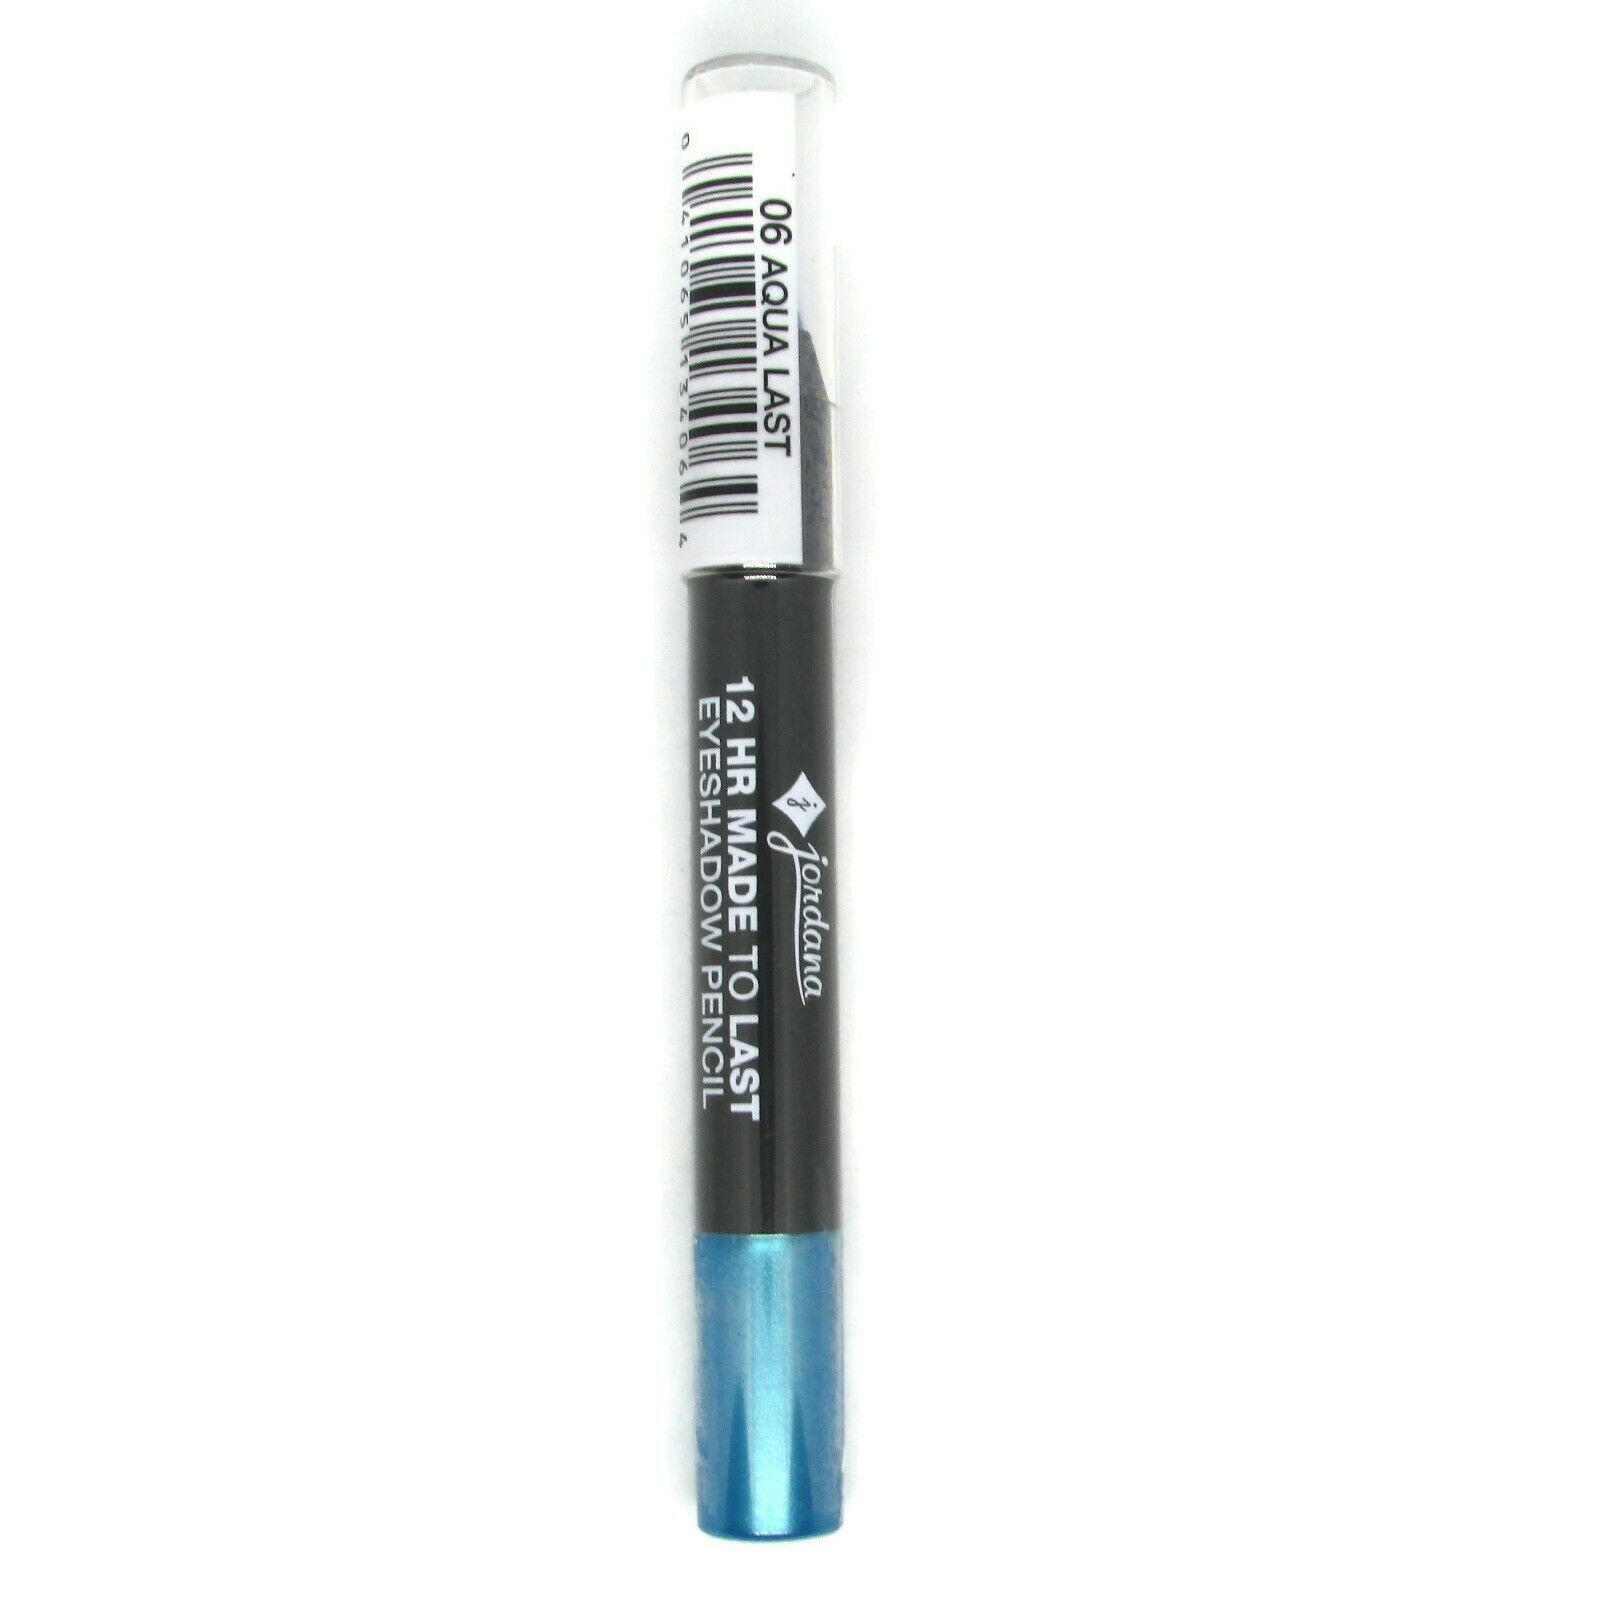 Primary image for Jordana 12 Hour Made To Last Eyeshadow Pencil